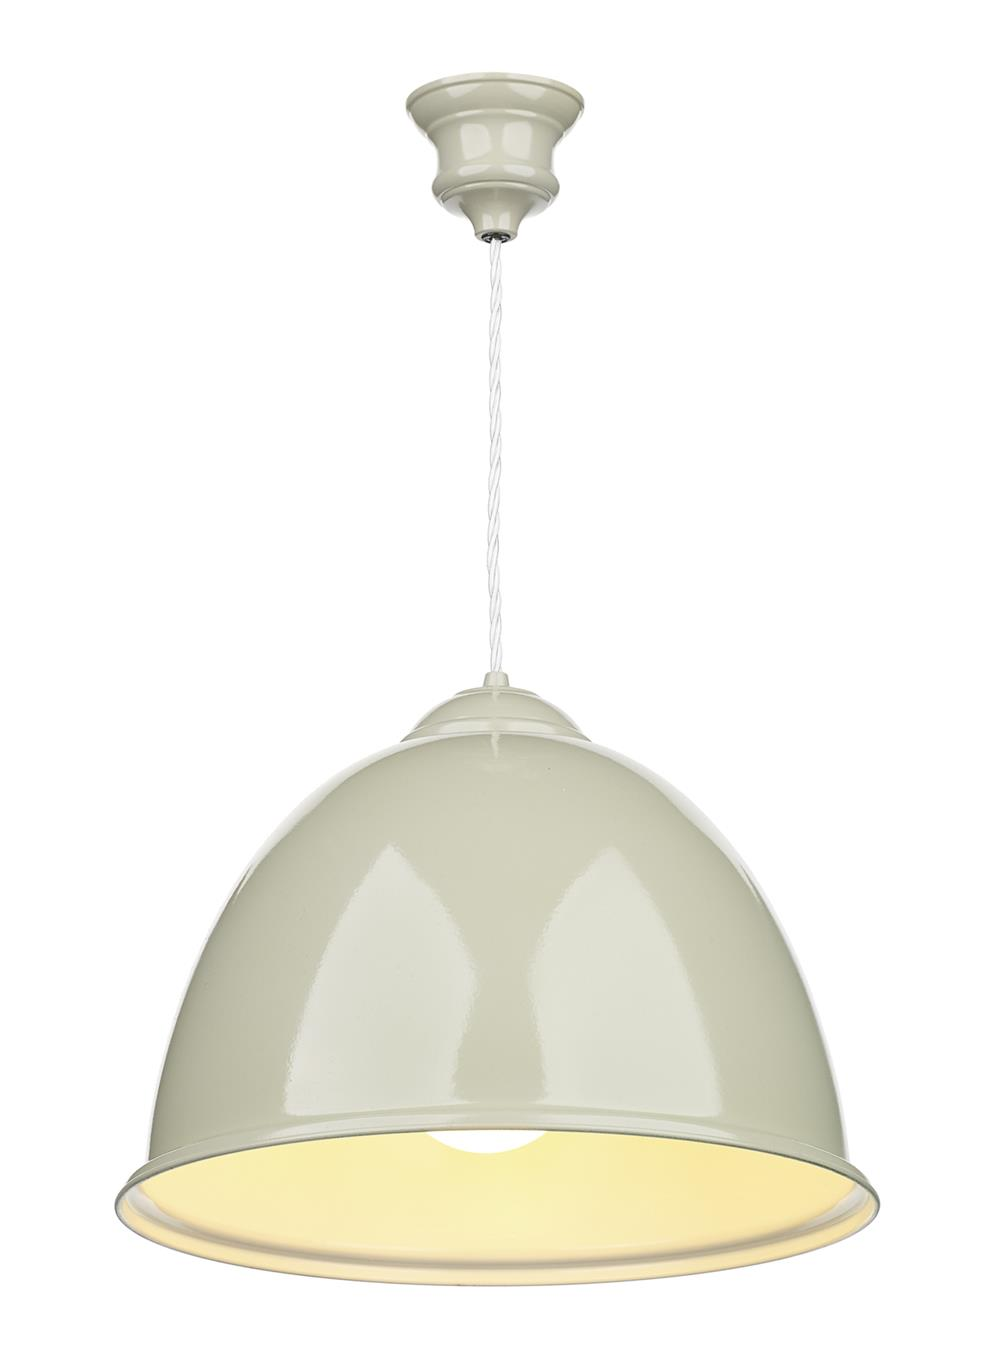 David Hunt Lighting EUS012 Euston 1 Light Pendant in French Cream with White Inner